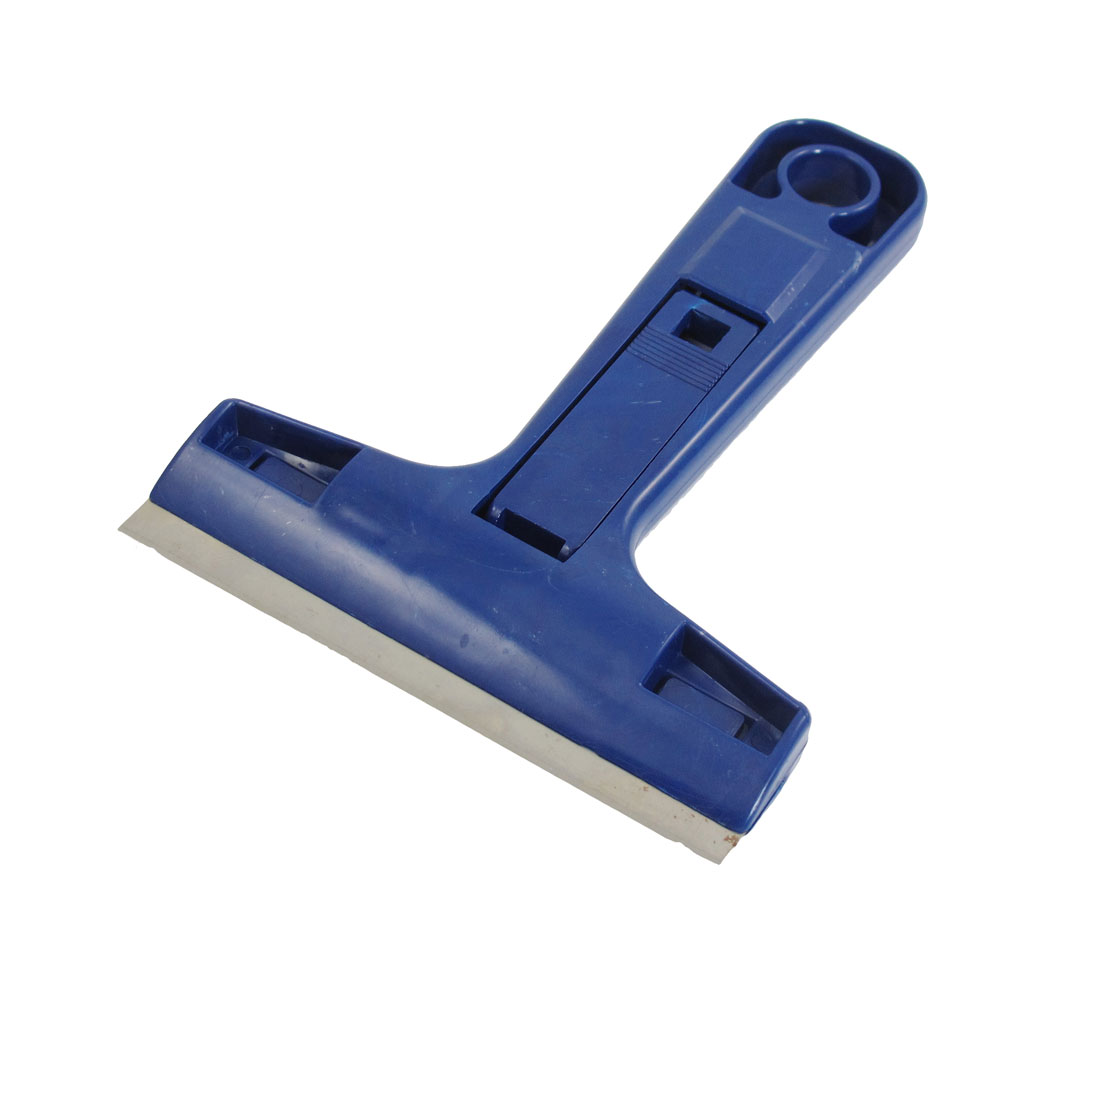 Dark Blue Plastic Handle Home Wall Floor Paint Decal Remover Scraper